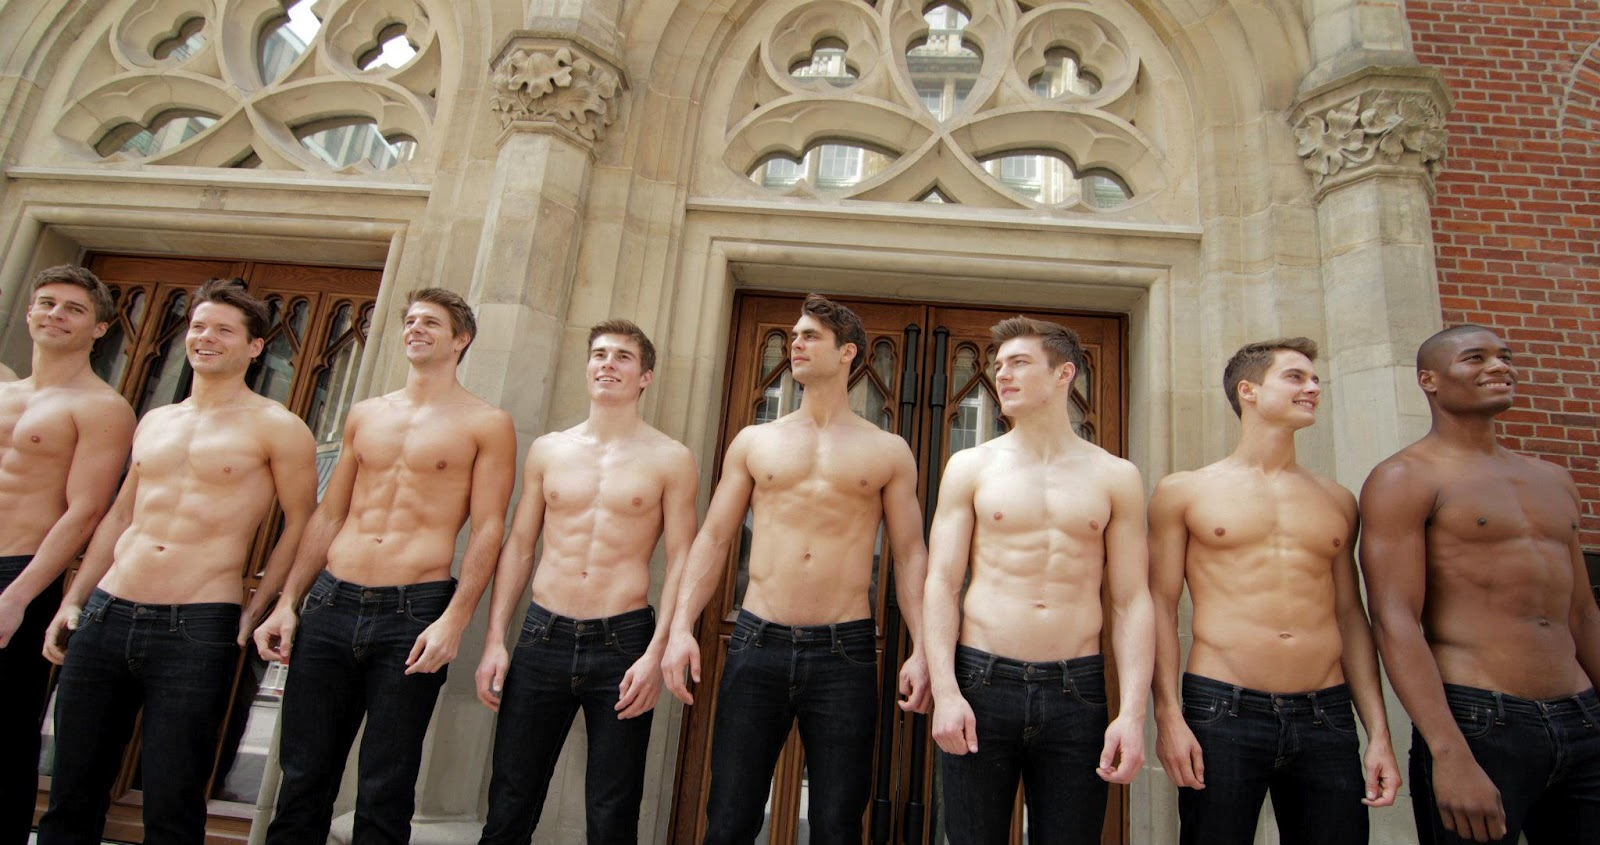 The Sitch on Fitch: More of the Promo Boys of Abercrombie ...